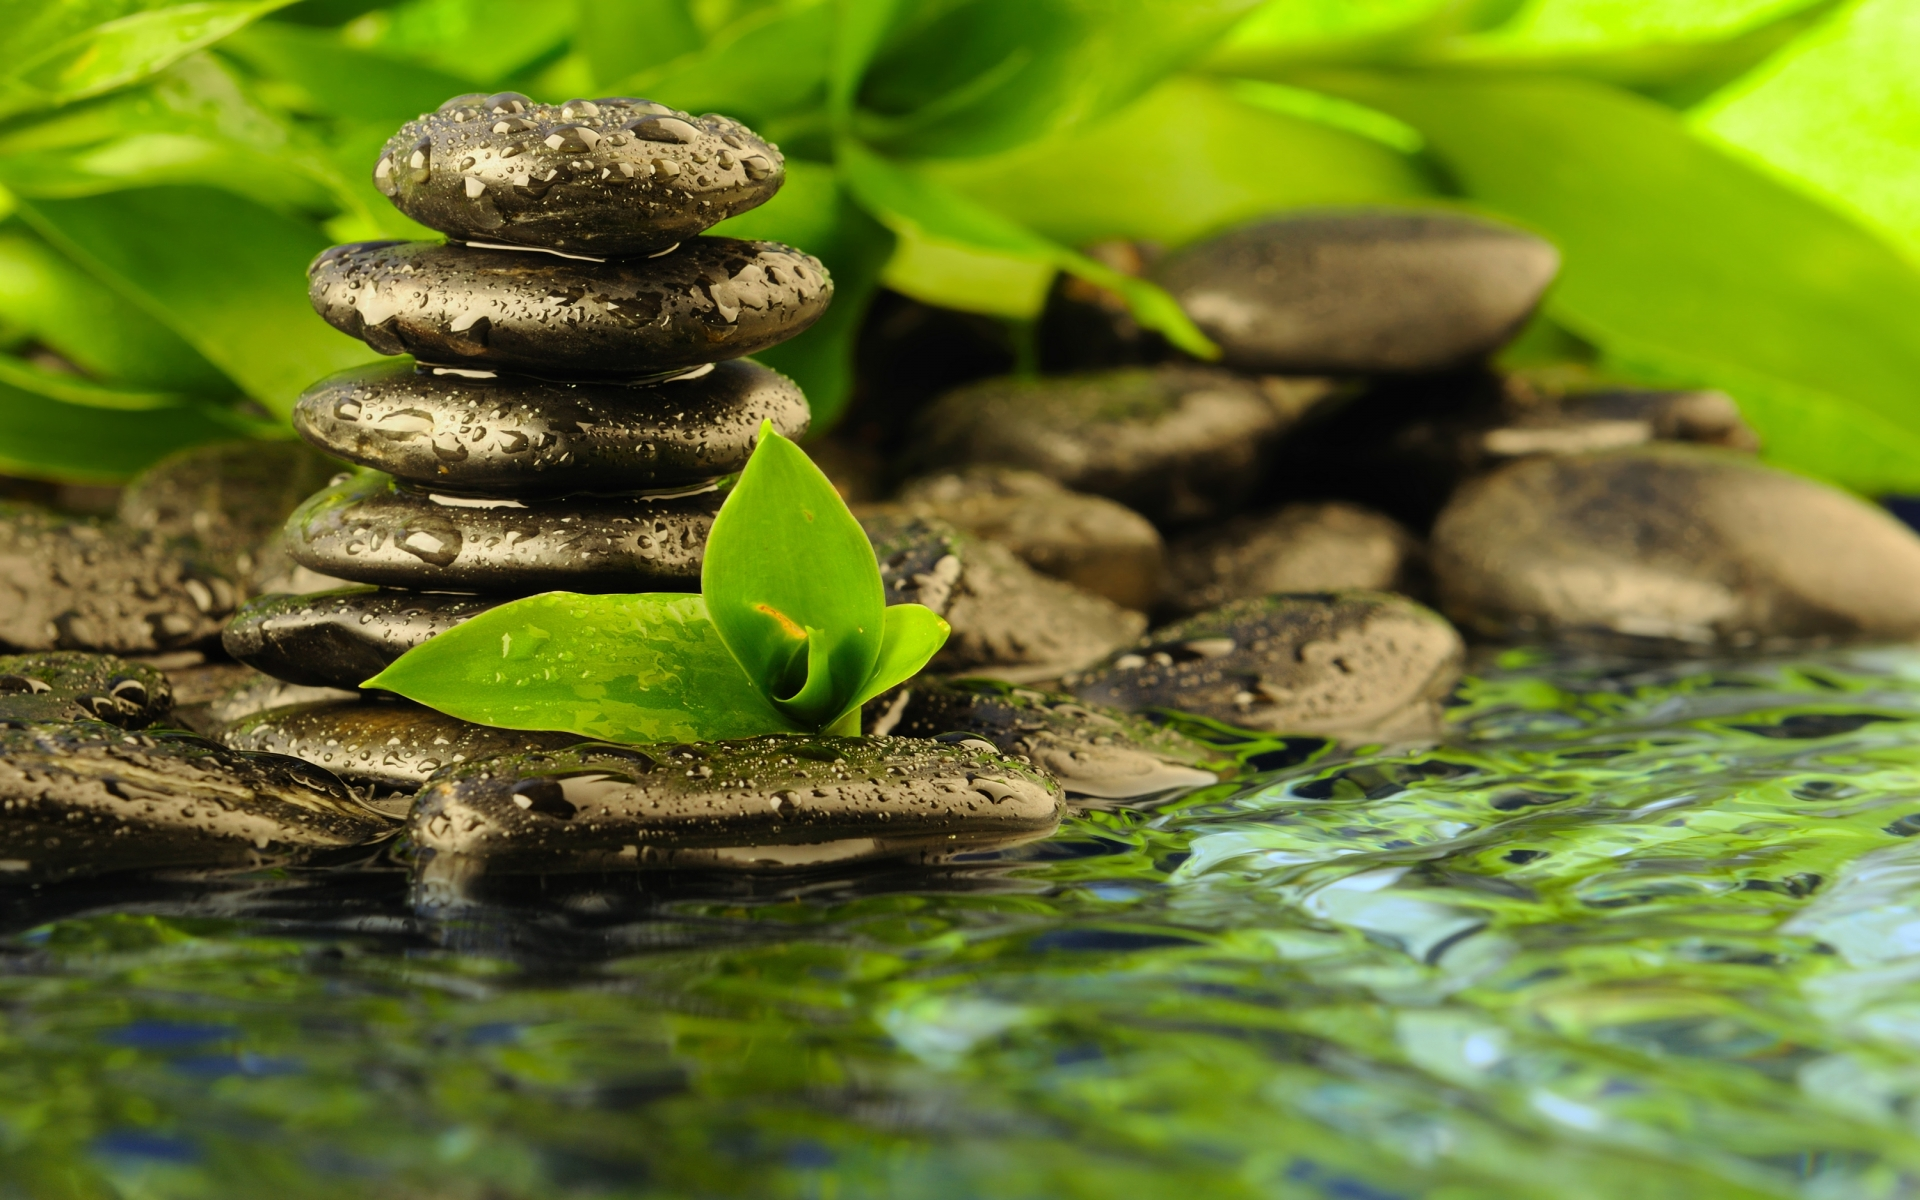 Zen Religion Peace Solitude Water Reflection Rocks Drops Leaves Contrast Asian Oriental Wallpaper